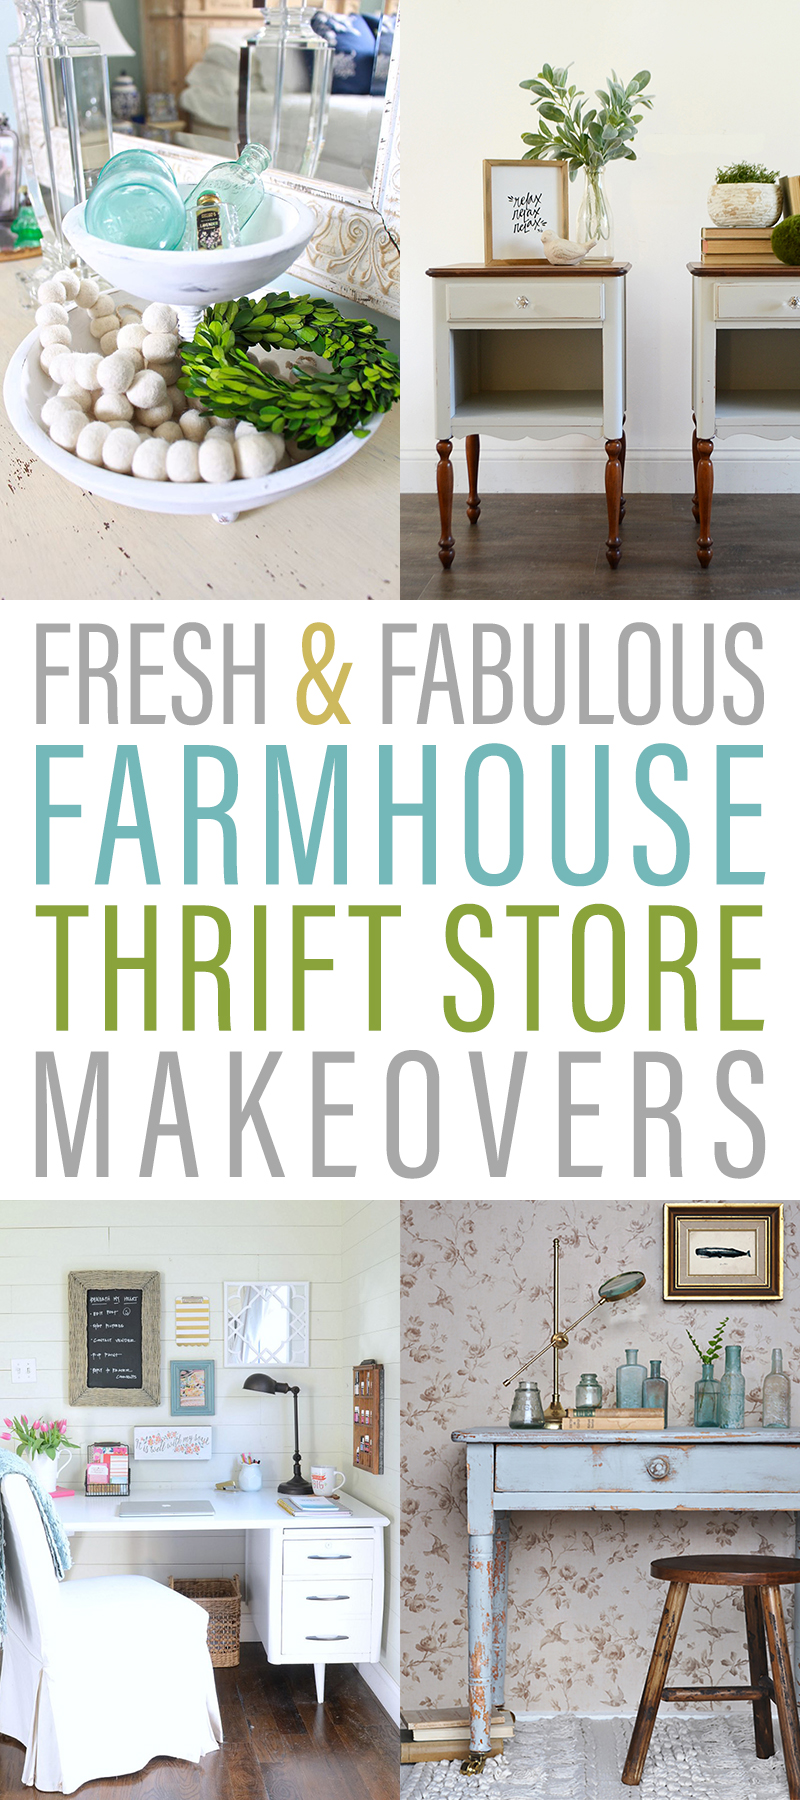 Fresh and Fabulous Farmhouse Thrift Store Makeovers that are just waiting for you to be inspired by! The before and afters are so amazing! ENJOY!